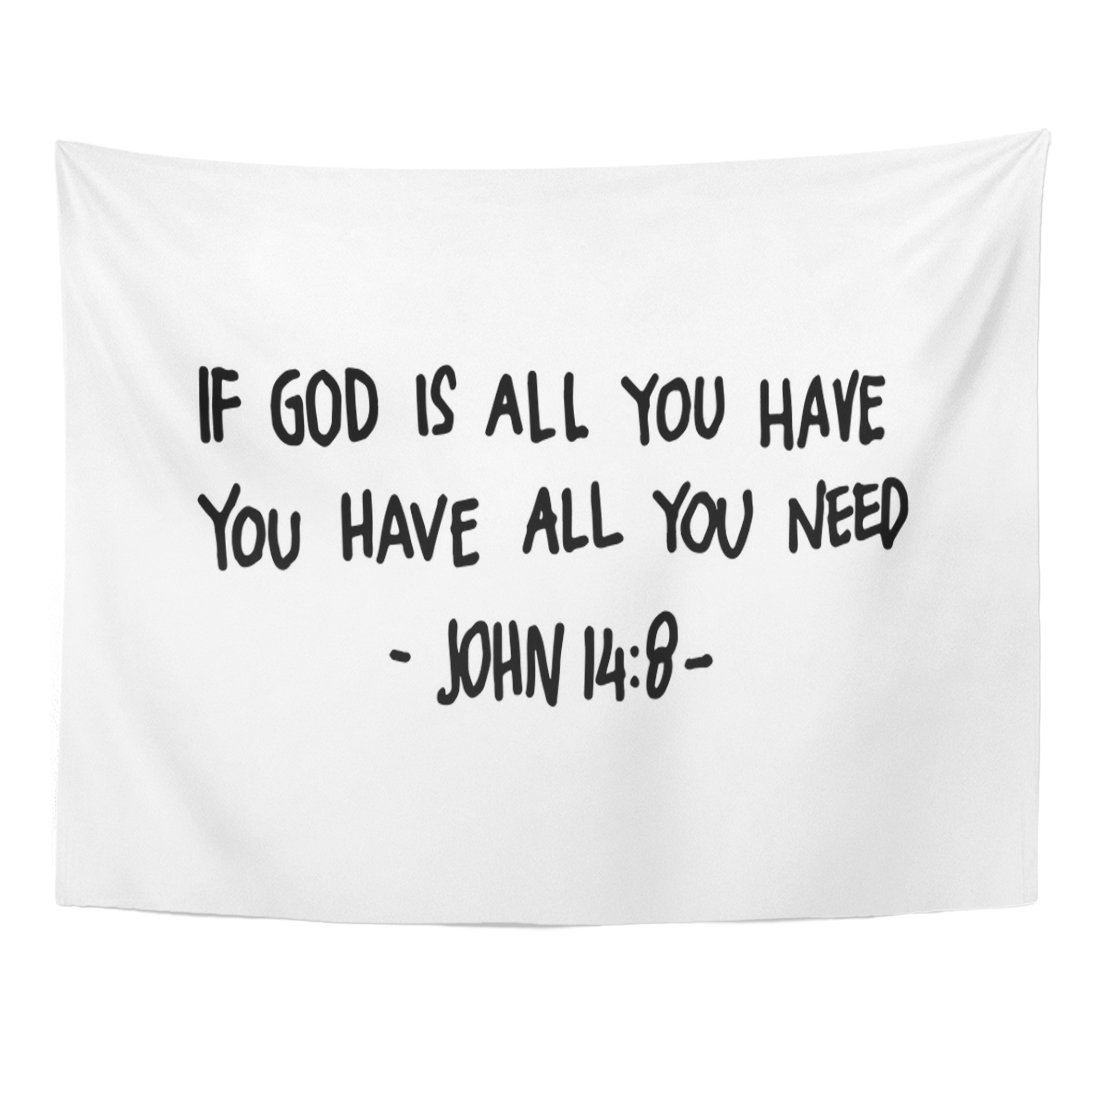 TOMPOP Tapestry Religious If God Is All You Have Need Lettering Bible Verse Modern Calligraphy Christian Faith Word Home Decor Wall Hanging for Living Room Bedroom Dorm 60x80 Inches